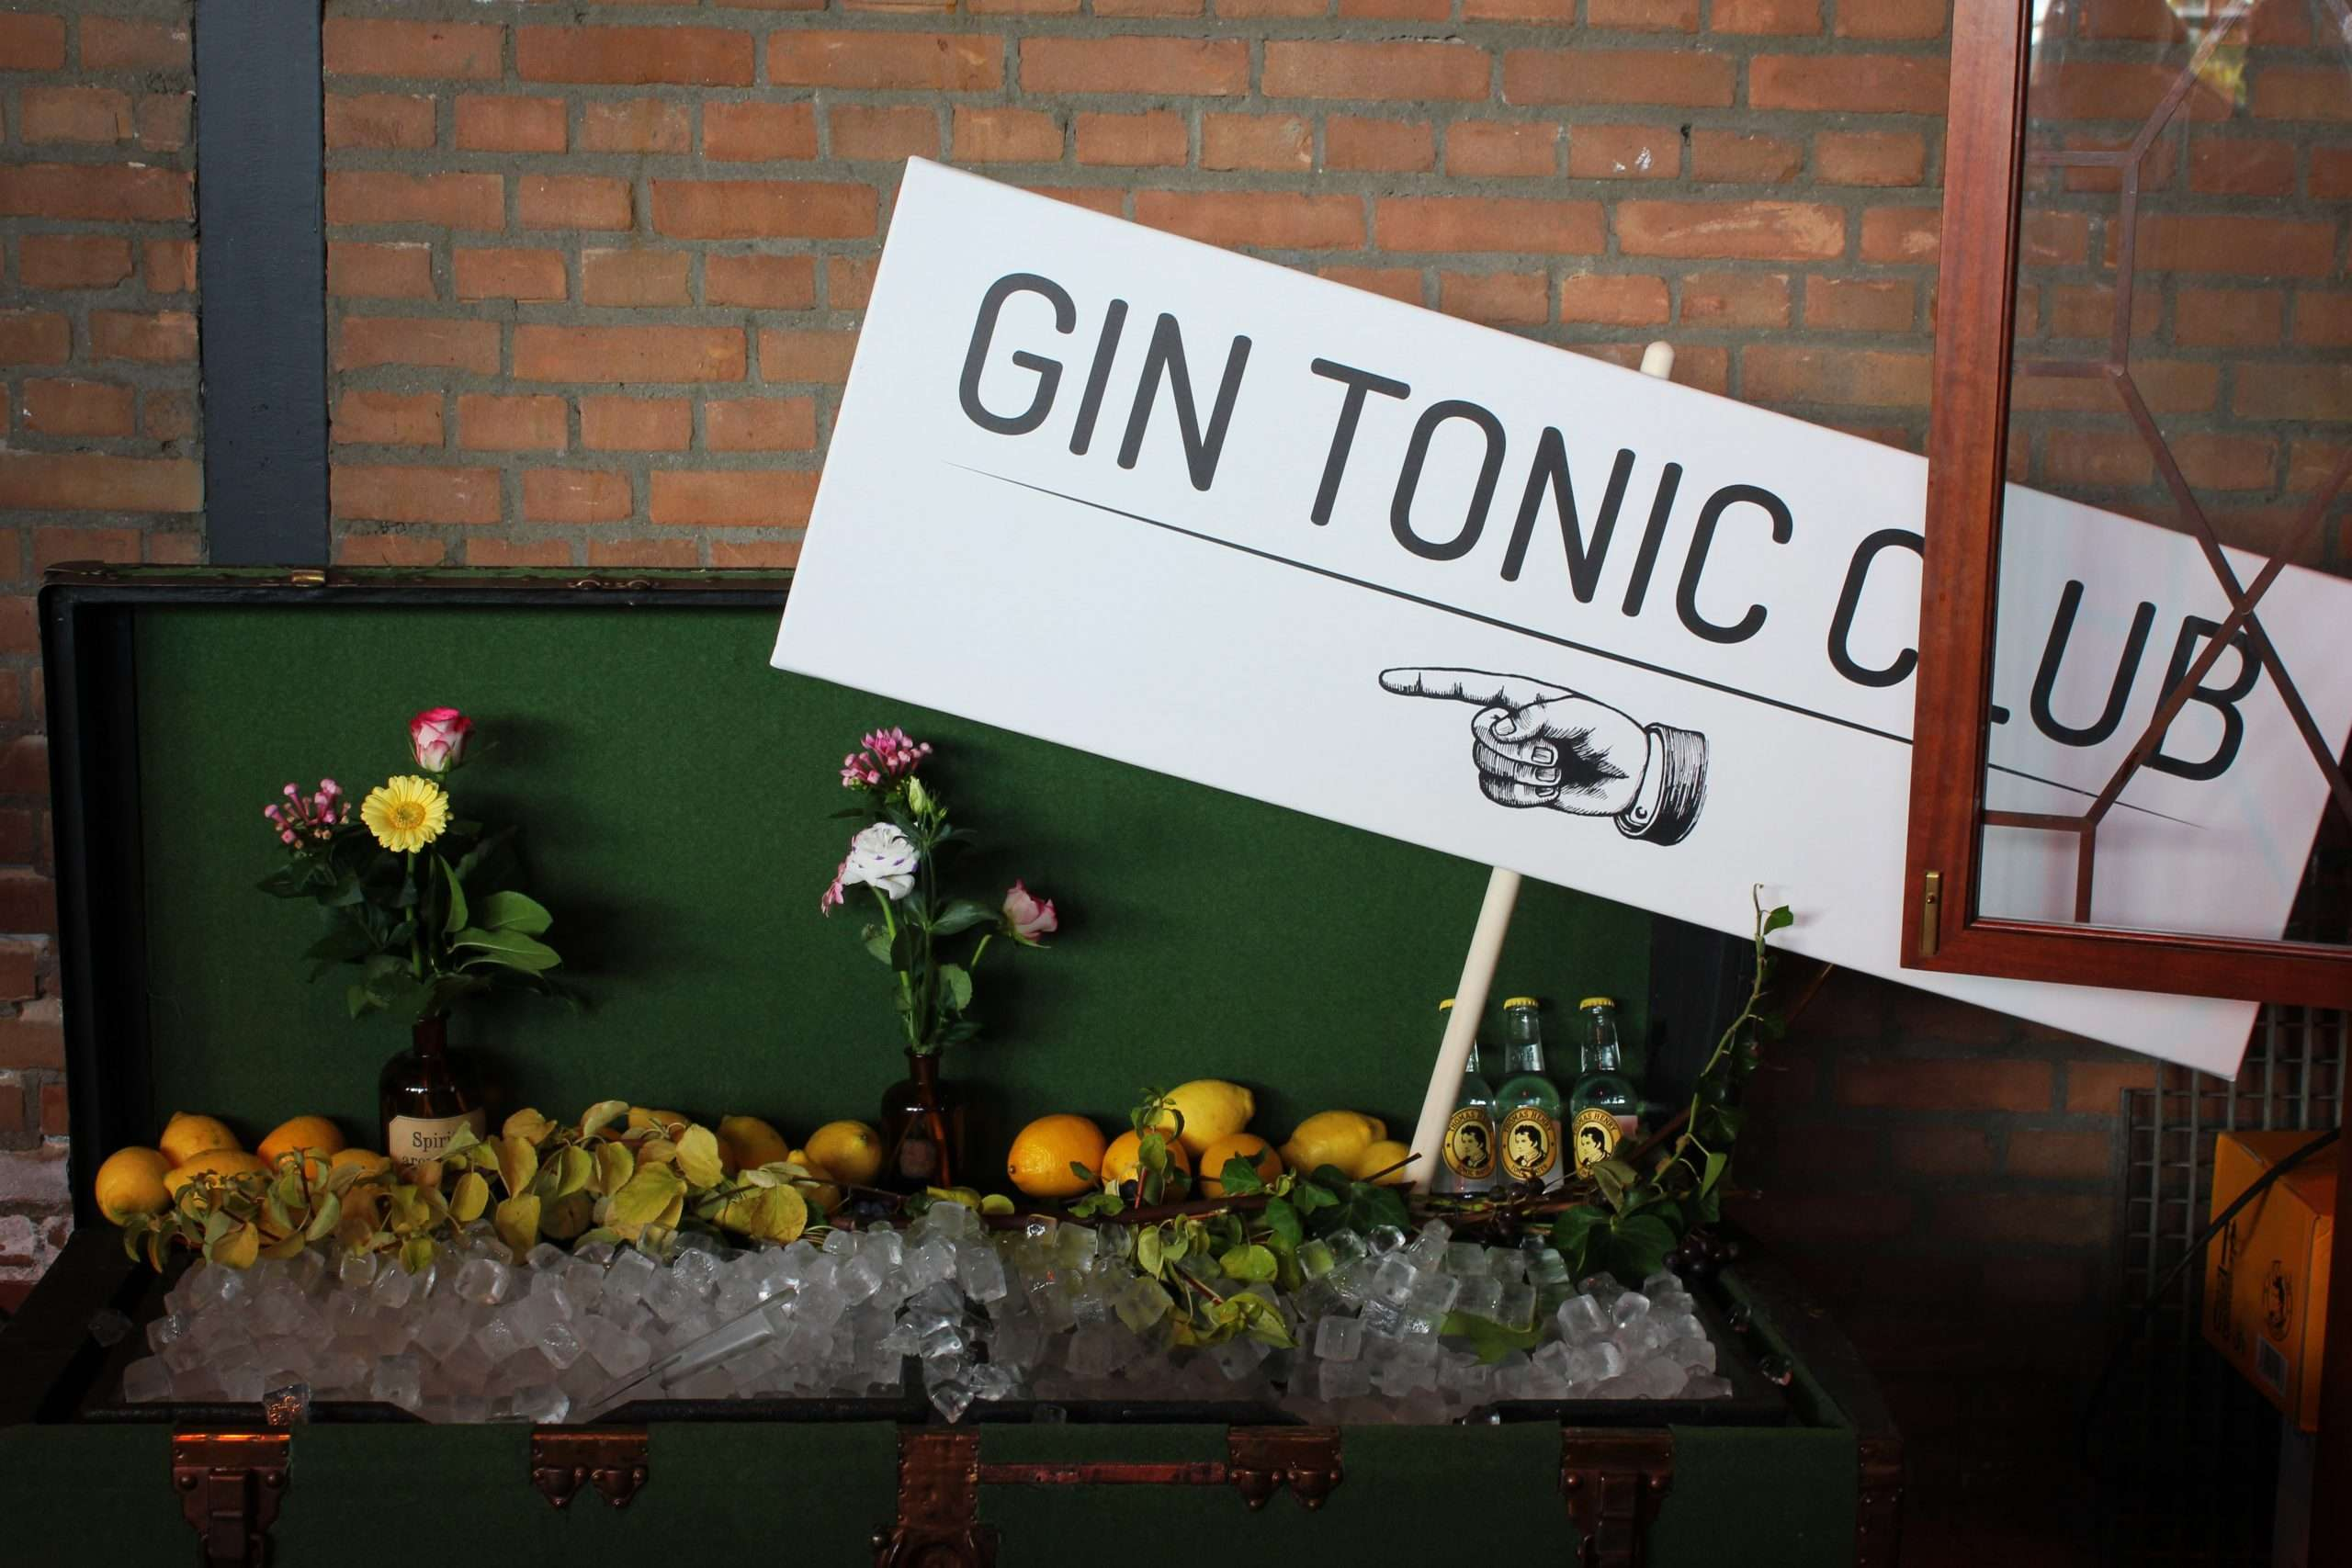 Gin and tonic sign